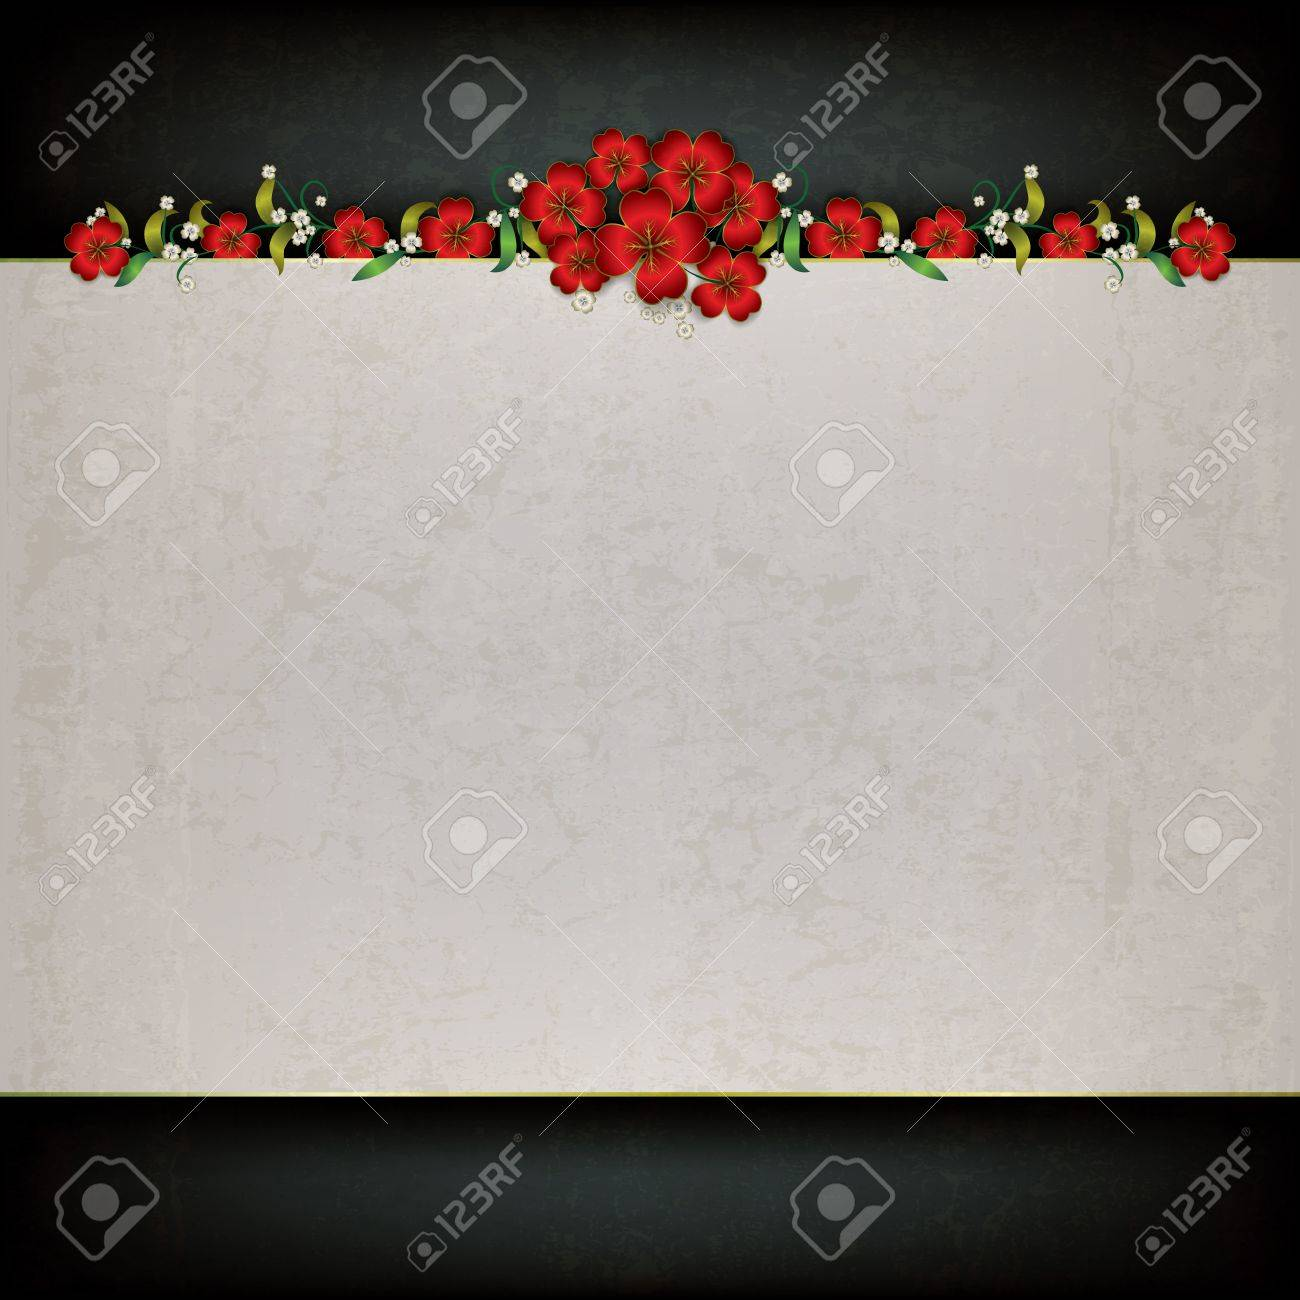 abstract grunge gray background with red floral ornament Stock Vector - 17554321